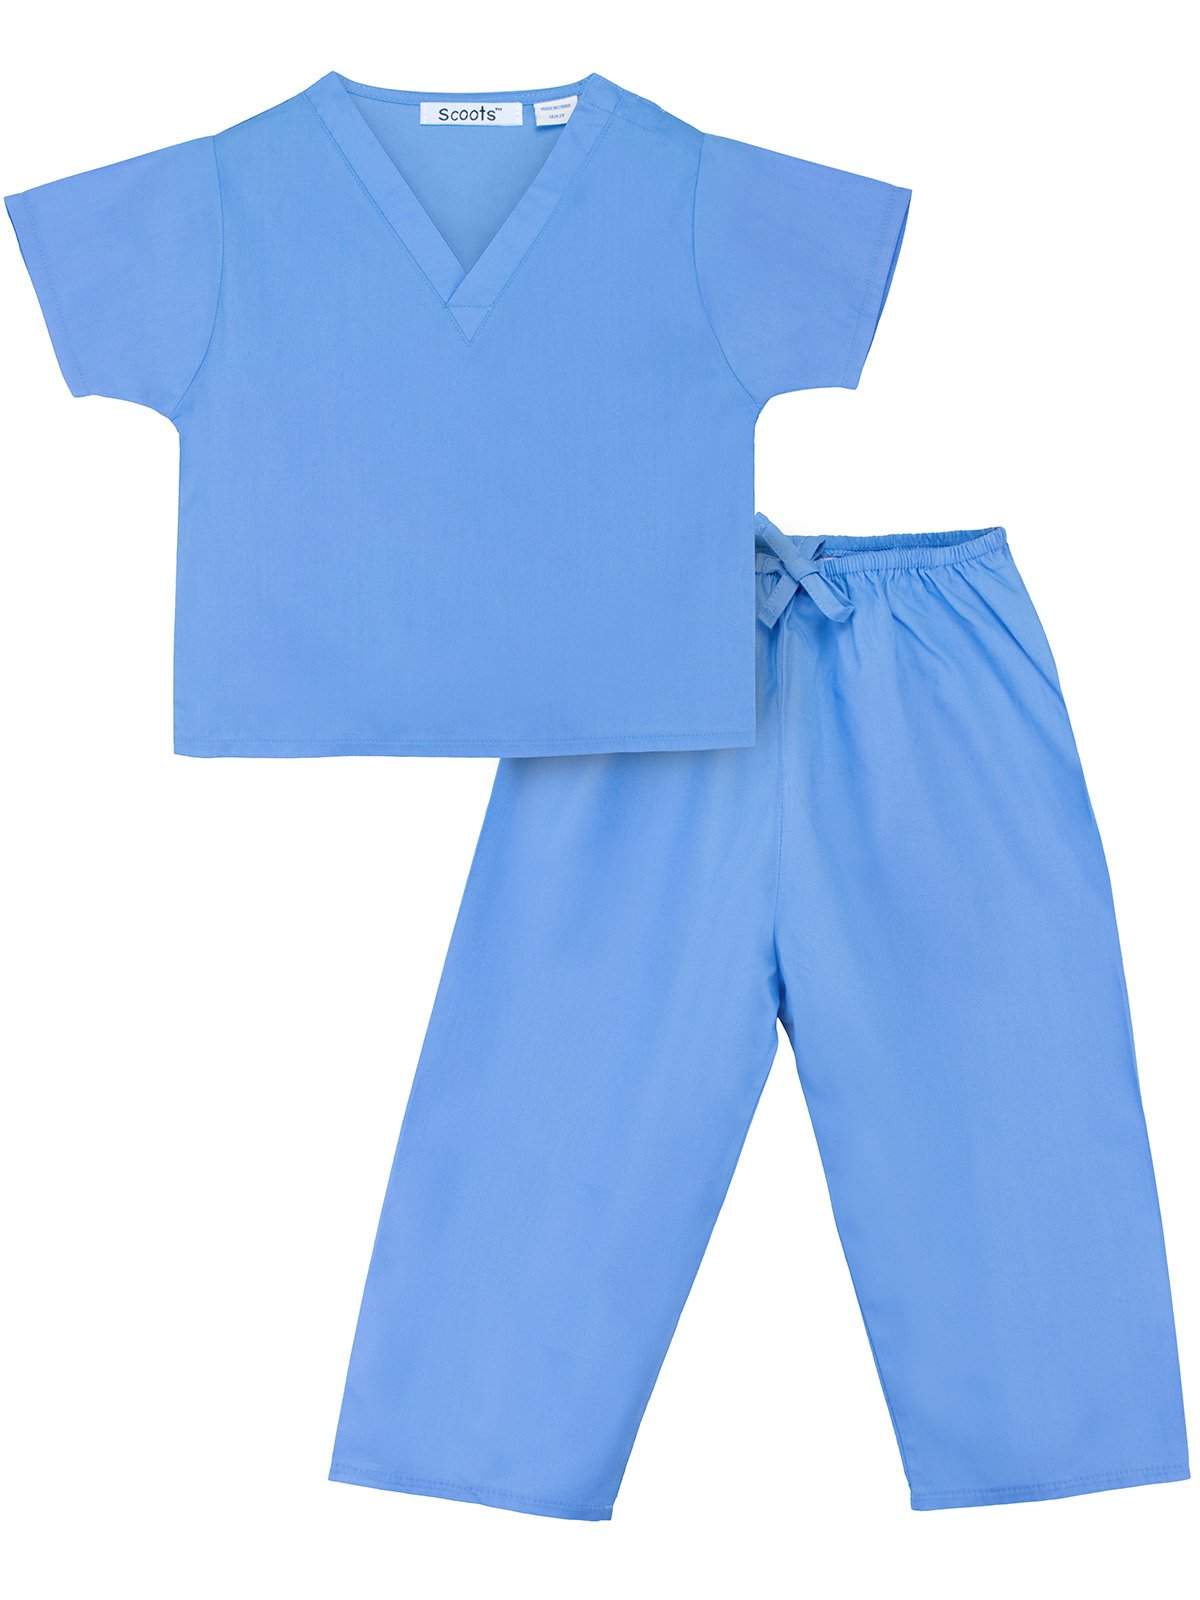 Scoots Toddler Scrubs, Blue, 2T